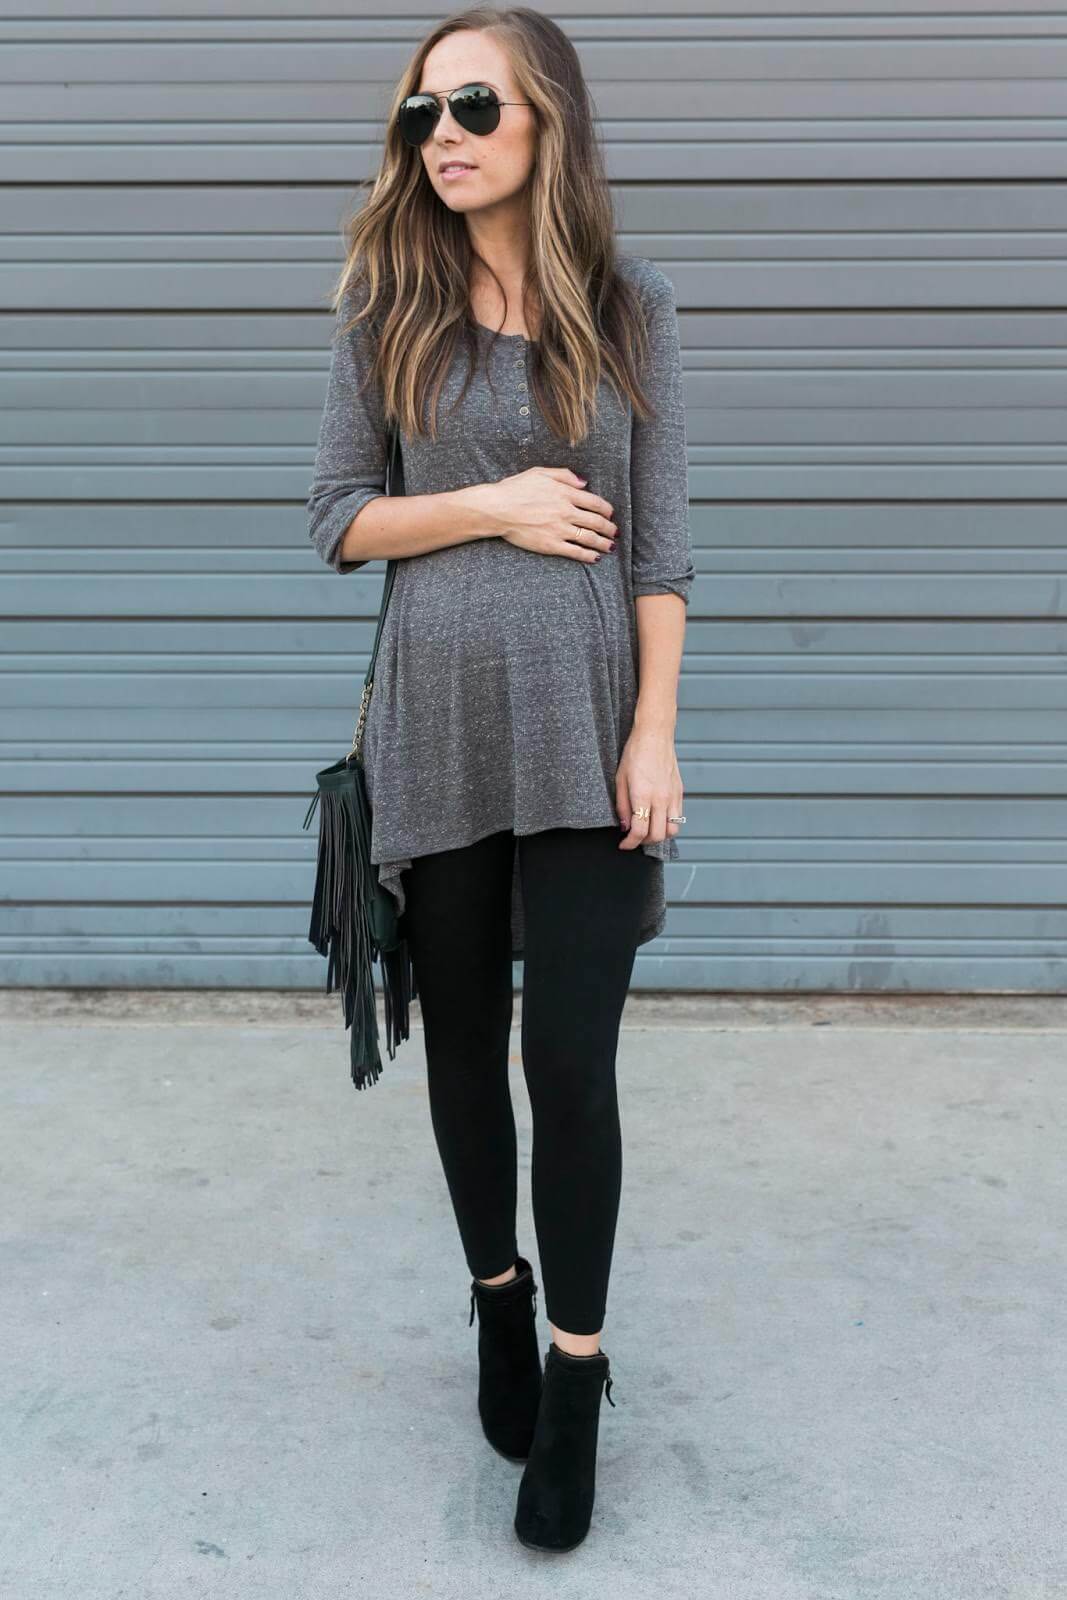 8 Simple Tips On Dressing Your Bump